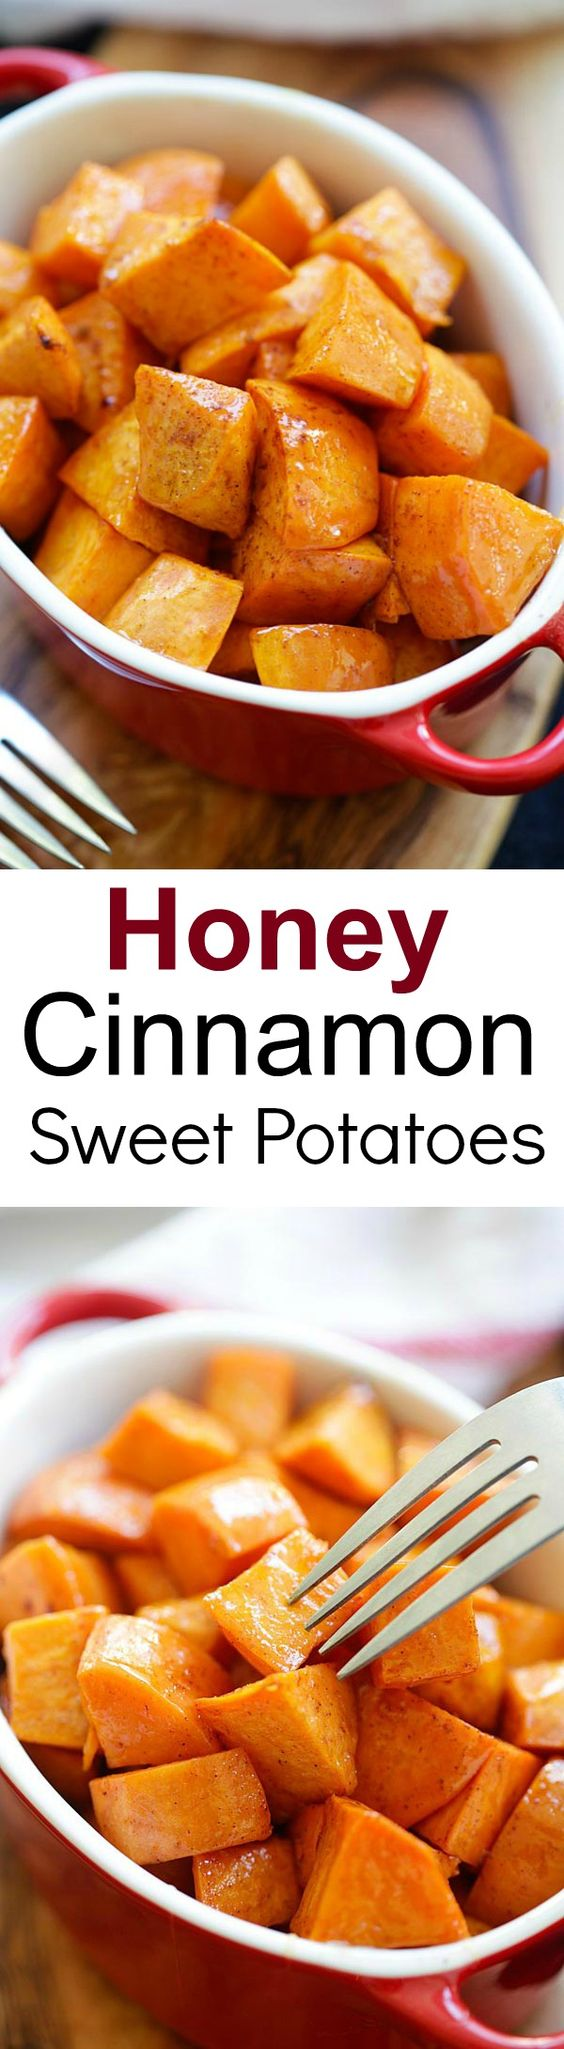 Honey Cinnamon Roasted Sweet Potatoes Recipe | Rasa Malaysia - The BEST Classic, Improved and Traditional Thanksgiving Dinner Menu Favorites Recipes - Main Dishes, Side Dishes, Appetizers, Salads, Yummy Desserts and more!